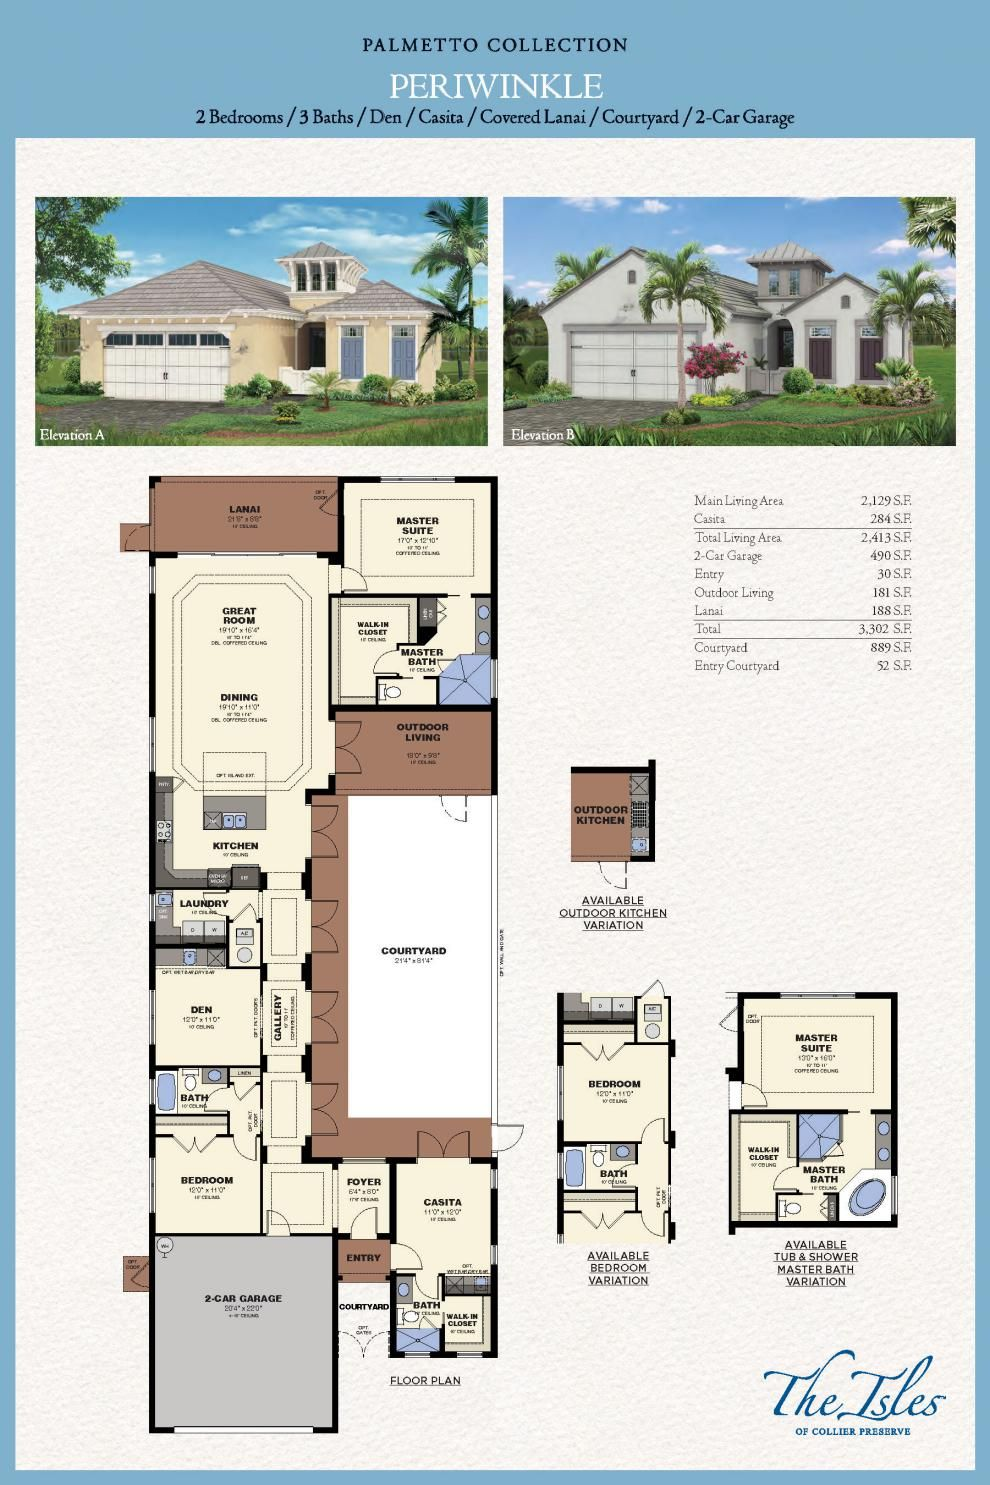 Isles of Collier Preserve - Periwinkle Model - Naples FL | Minto ...